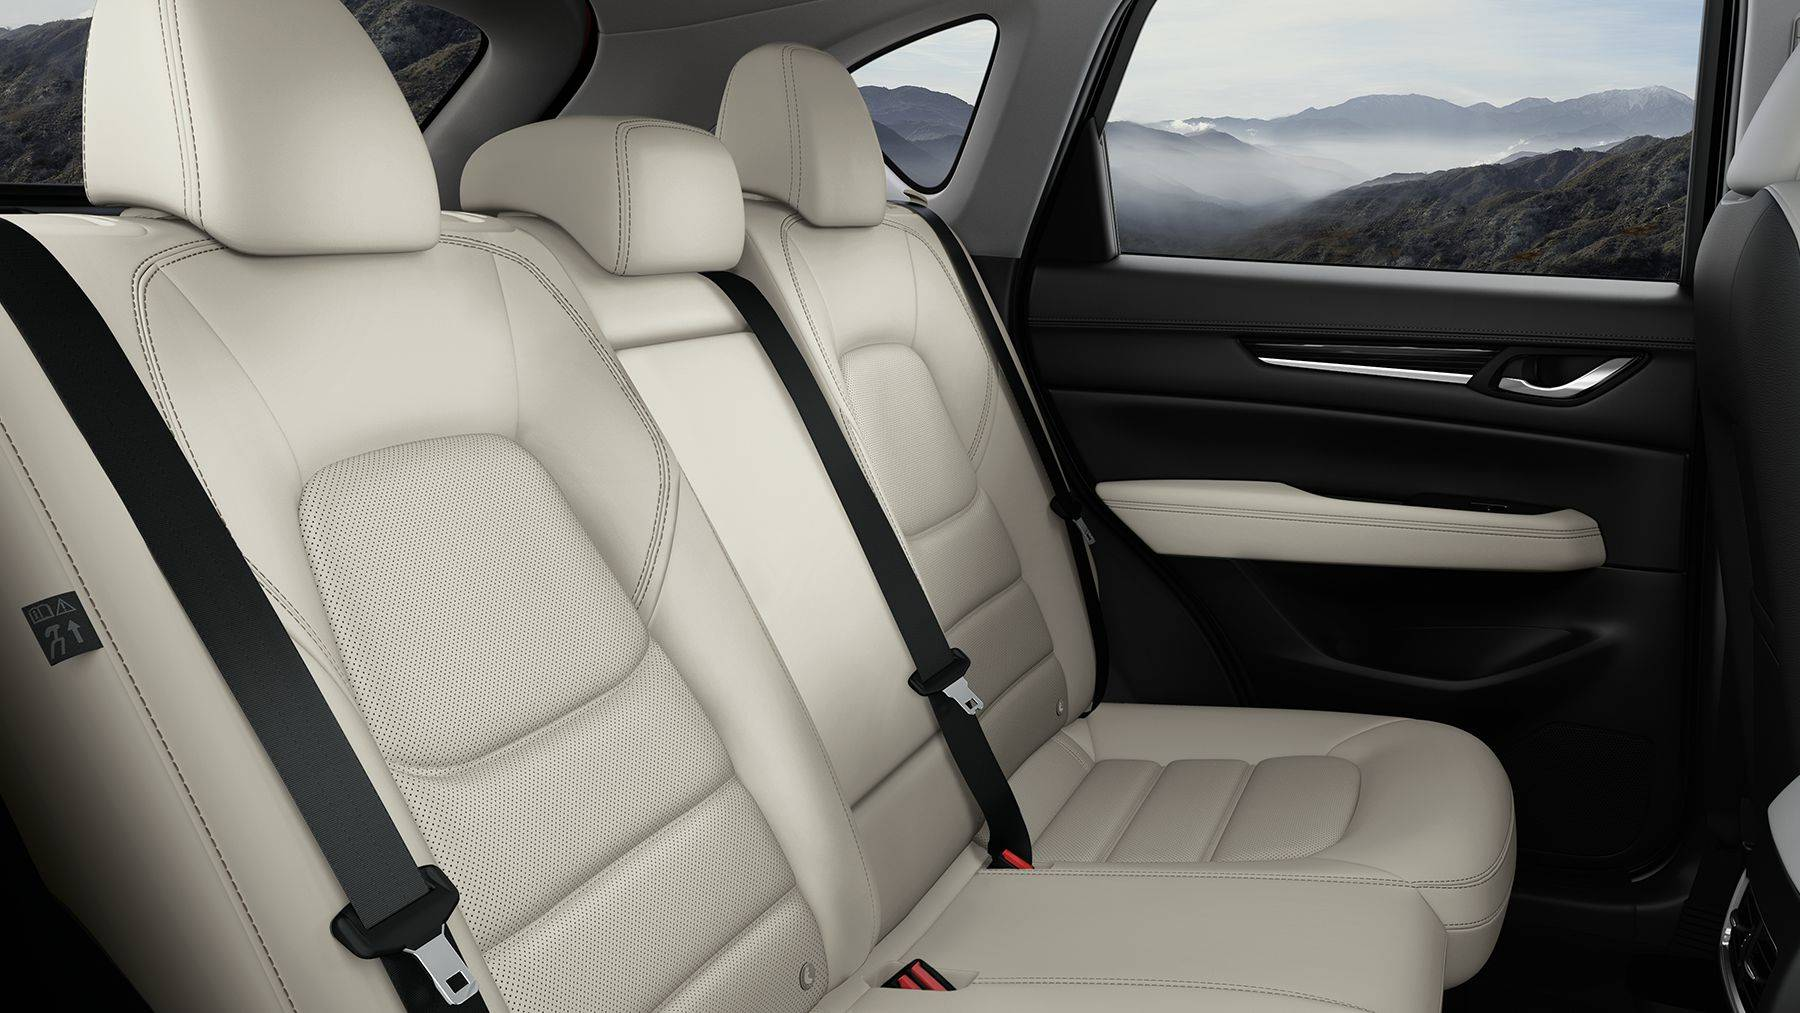 Spacious Rear Seating in the Mazda CX-5